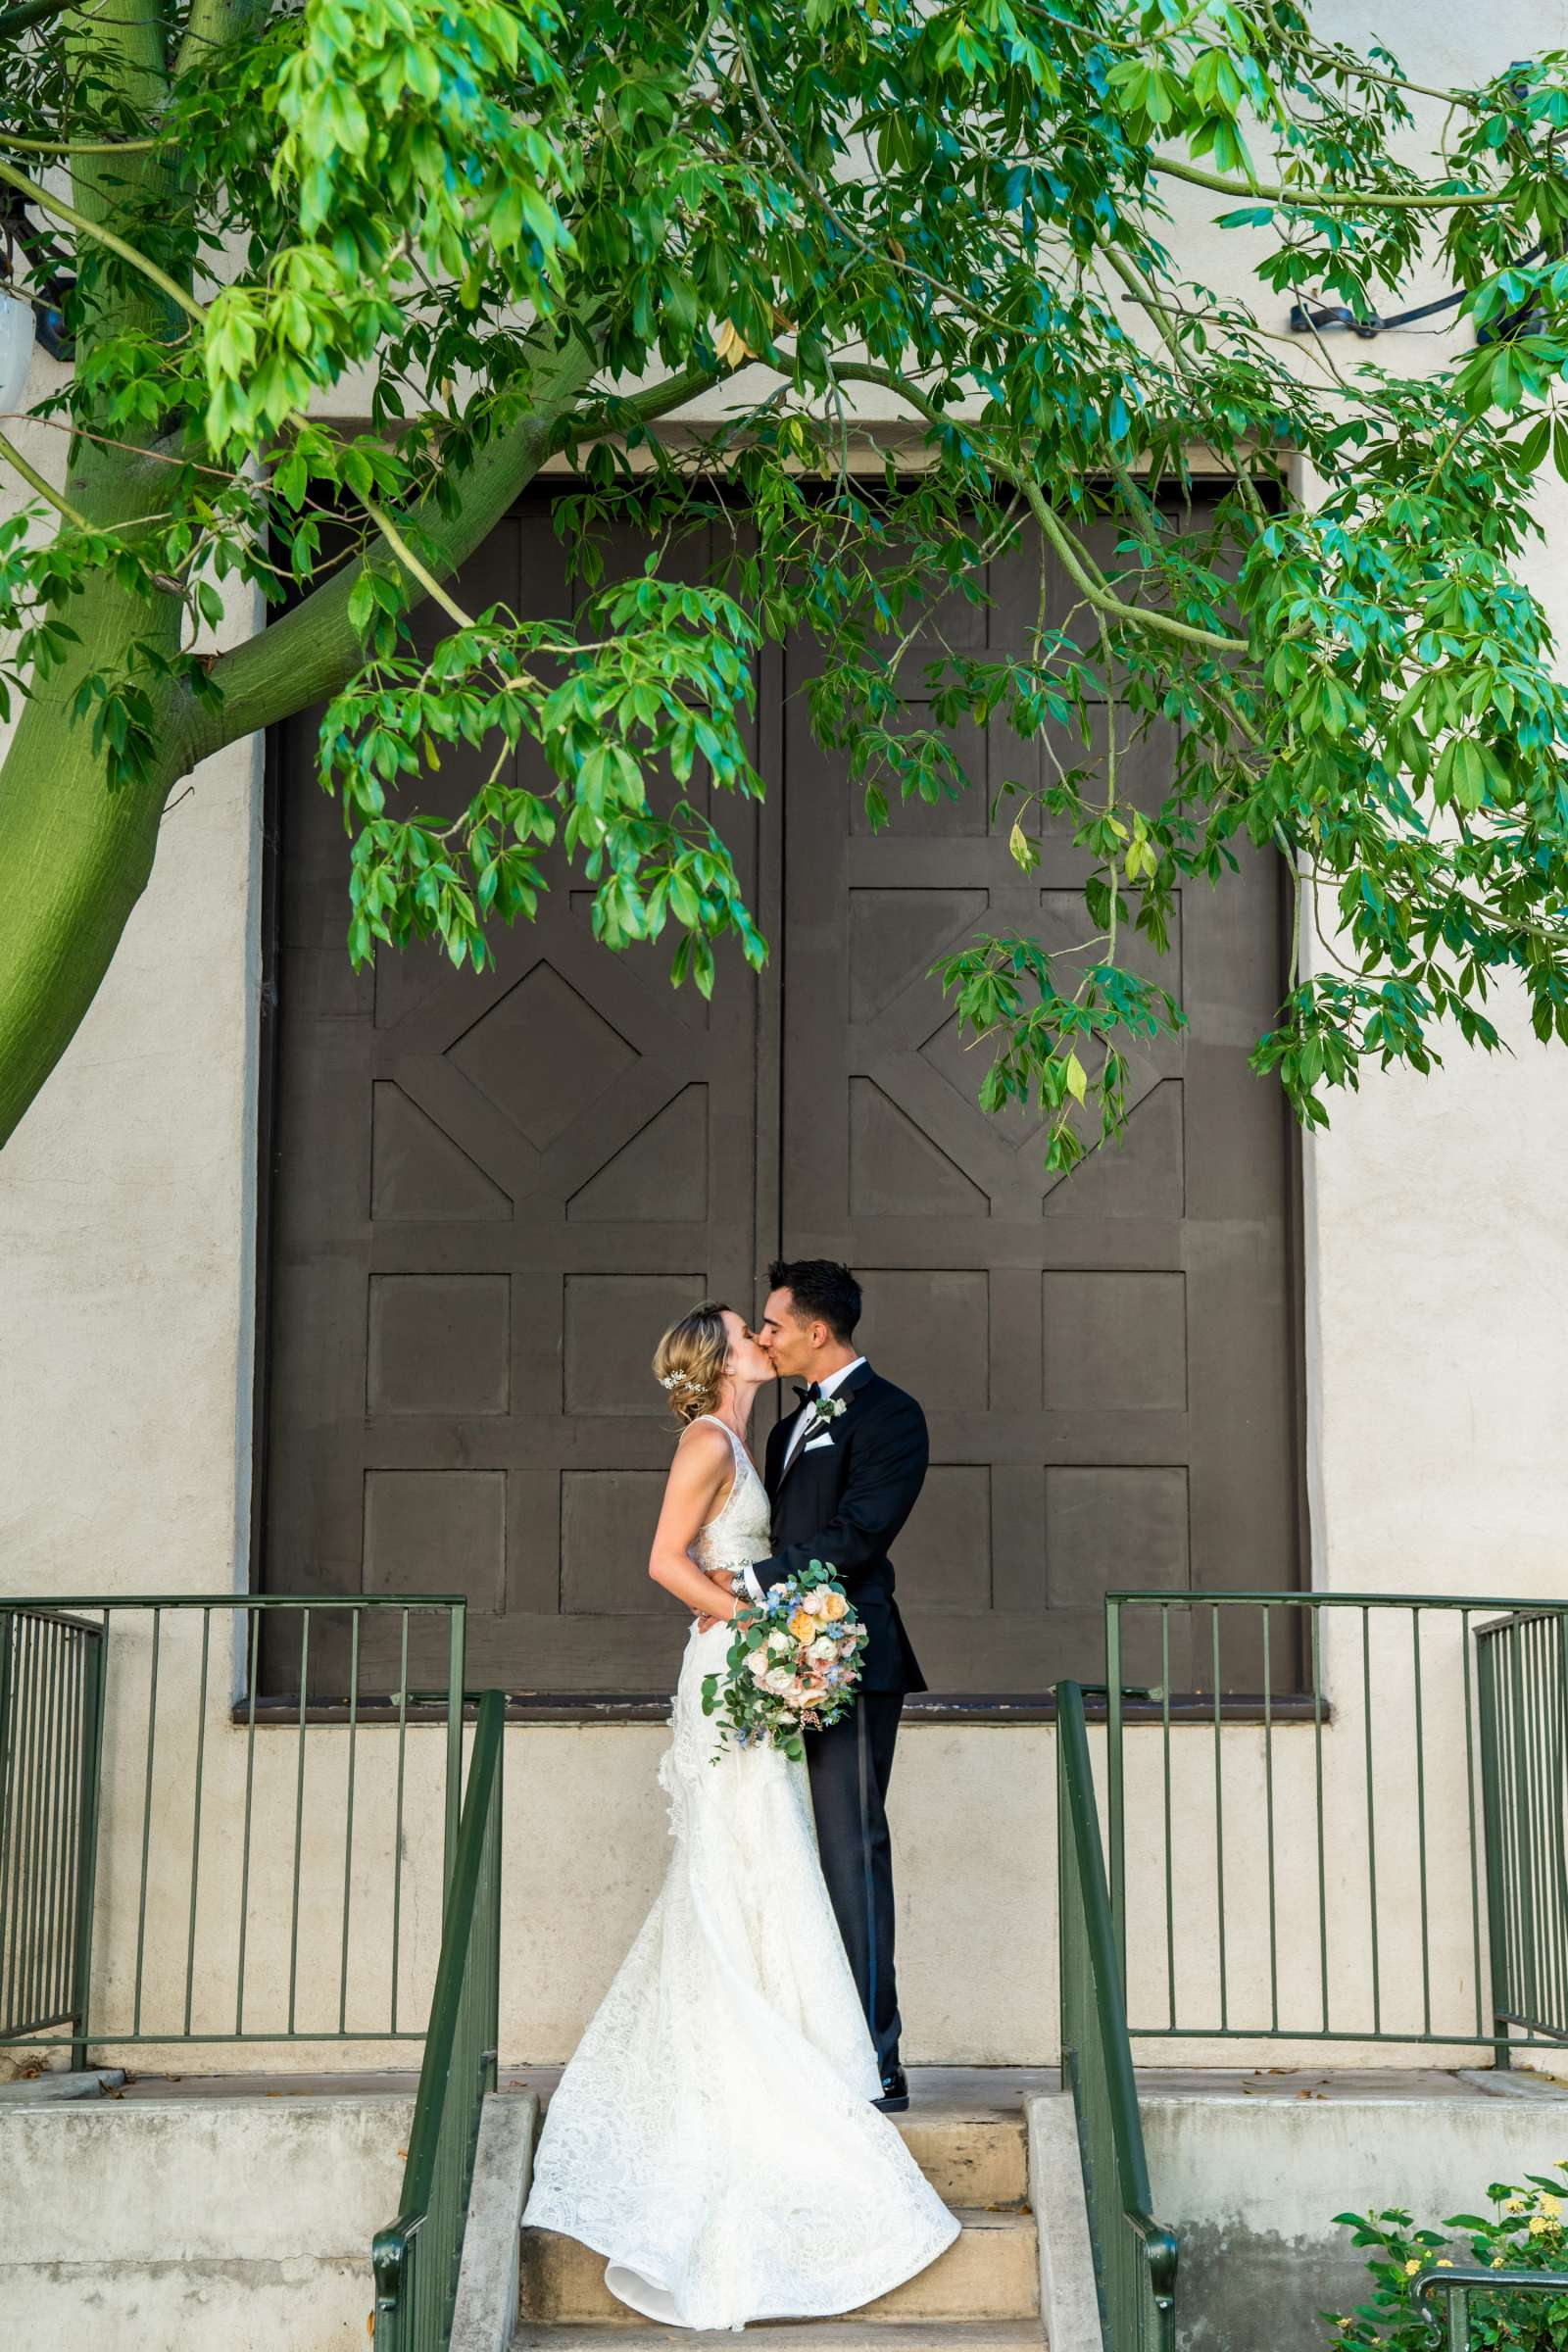 The Prado Wedding coordinated by Bliss Events, Sara and Marvin Wedding Photo #559479 by True Photography